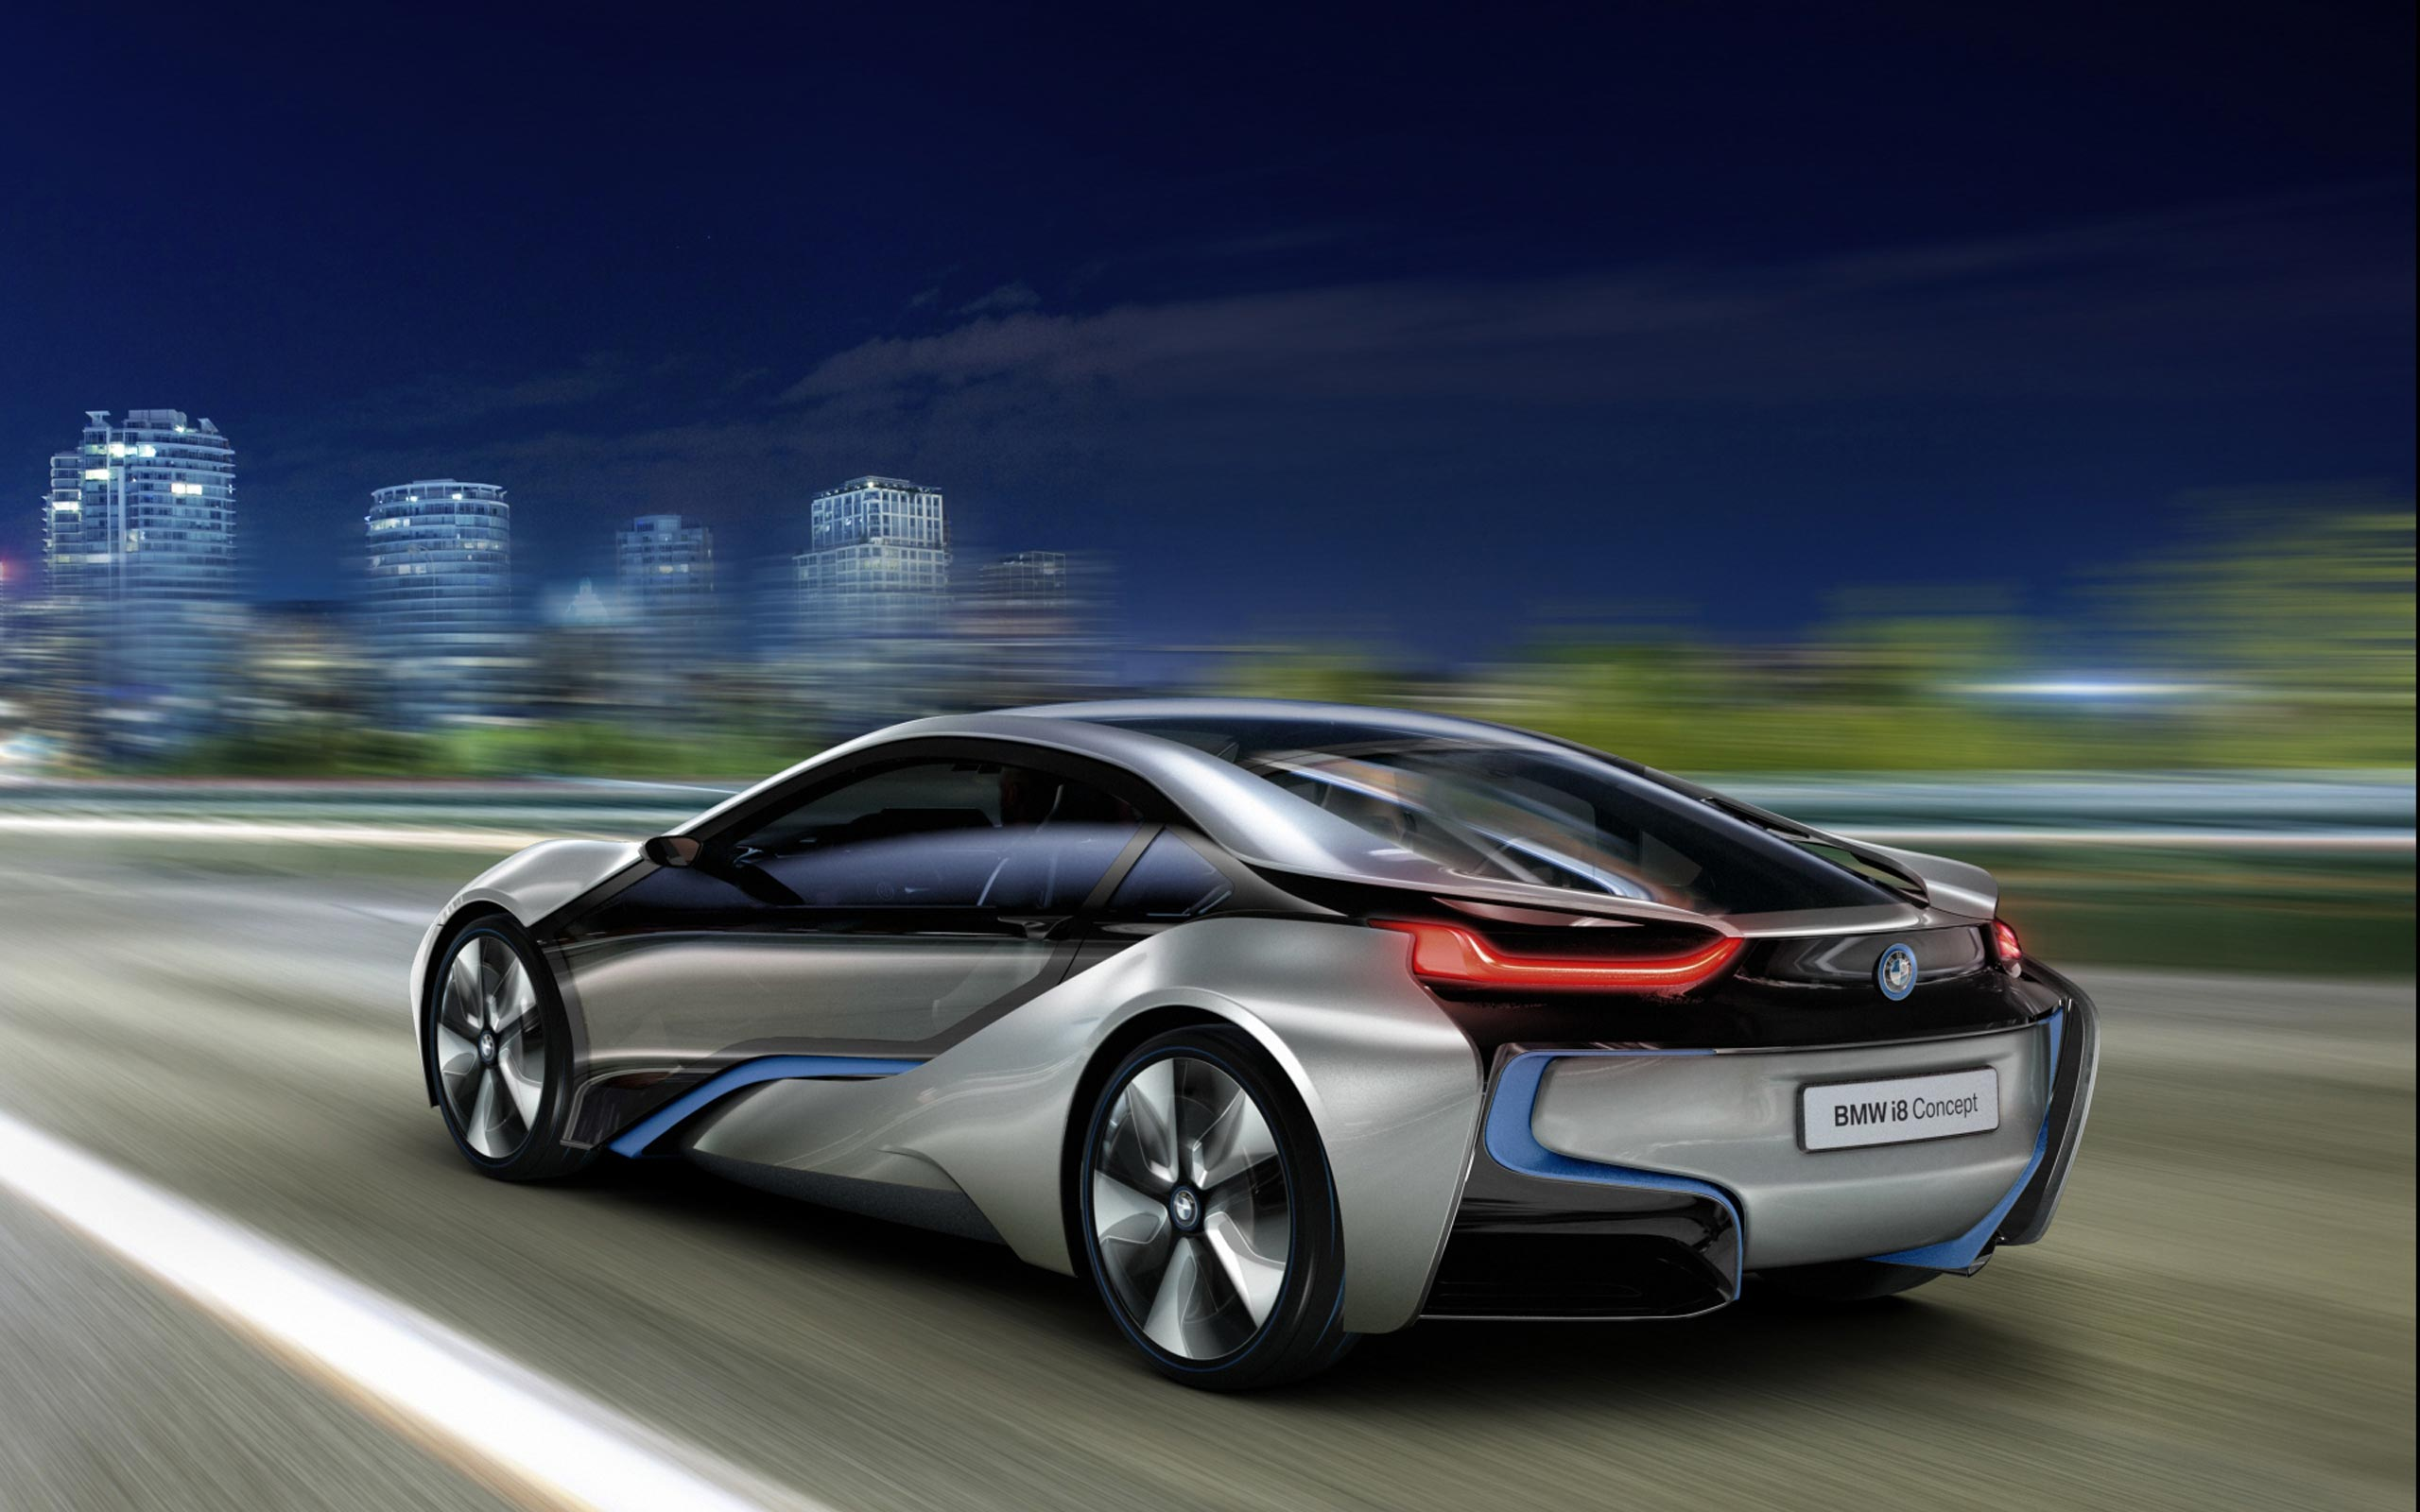 Amazing Bmw I8 Wallpaper 28637 2560x1600 Px Hdwallsource Com